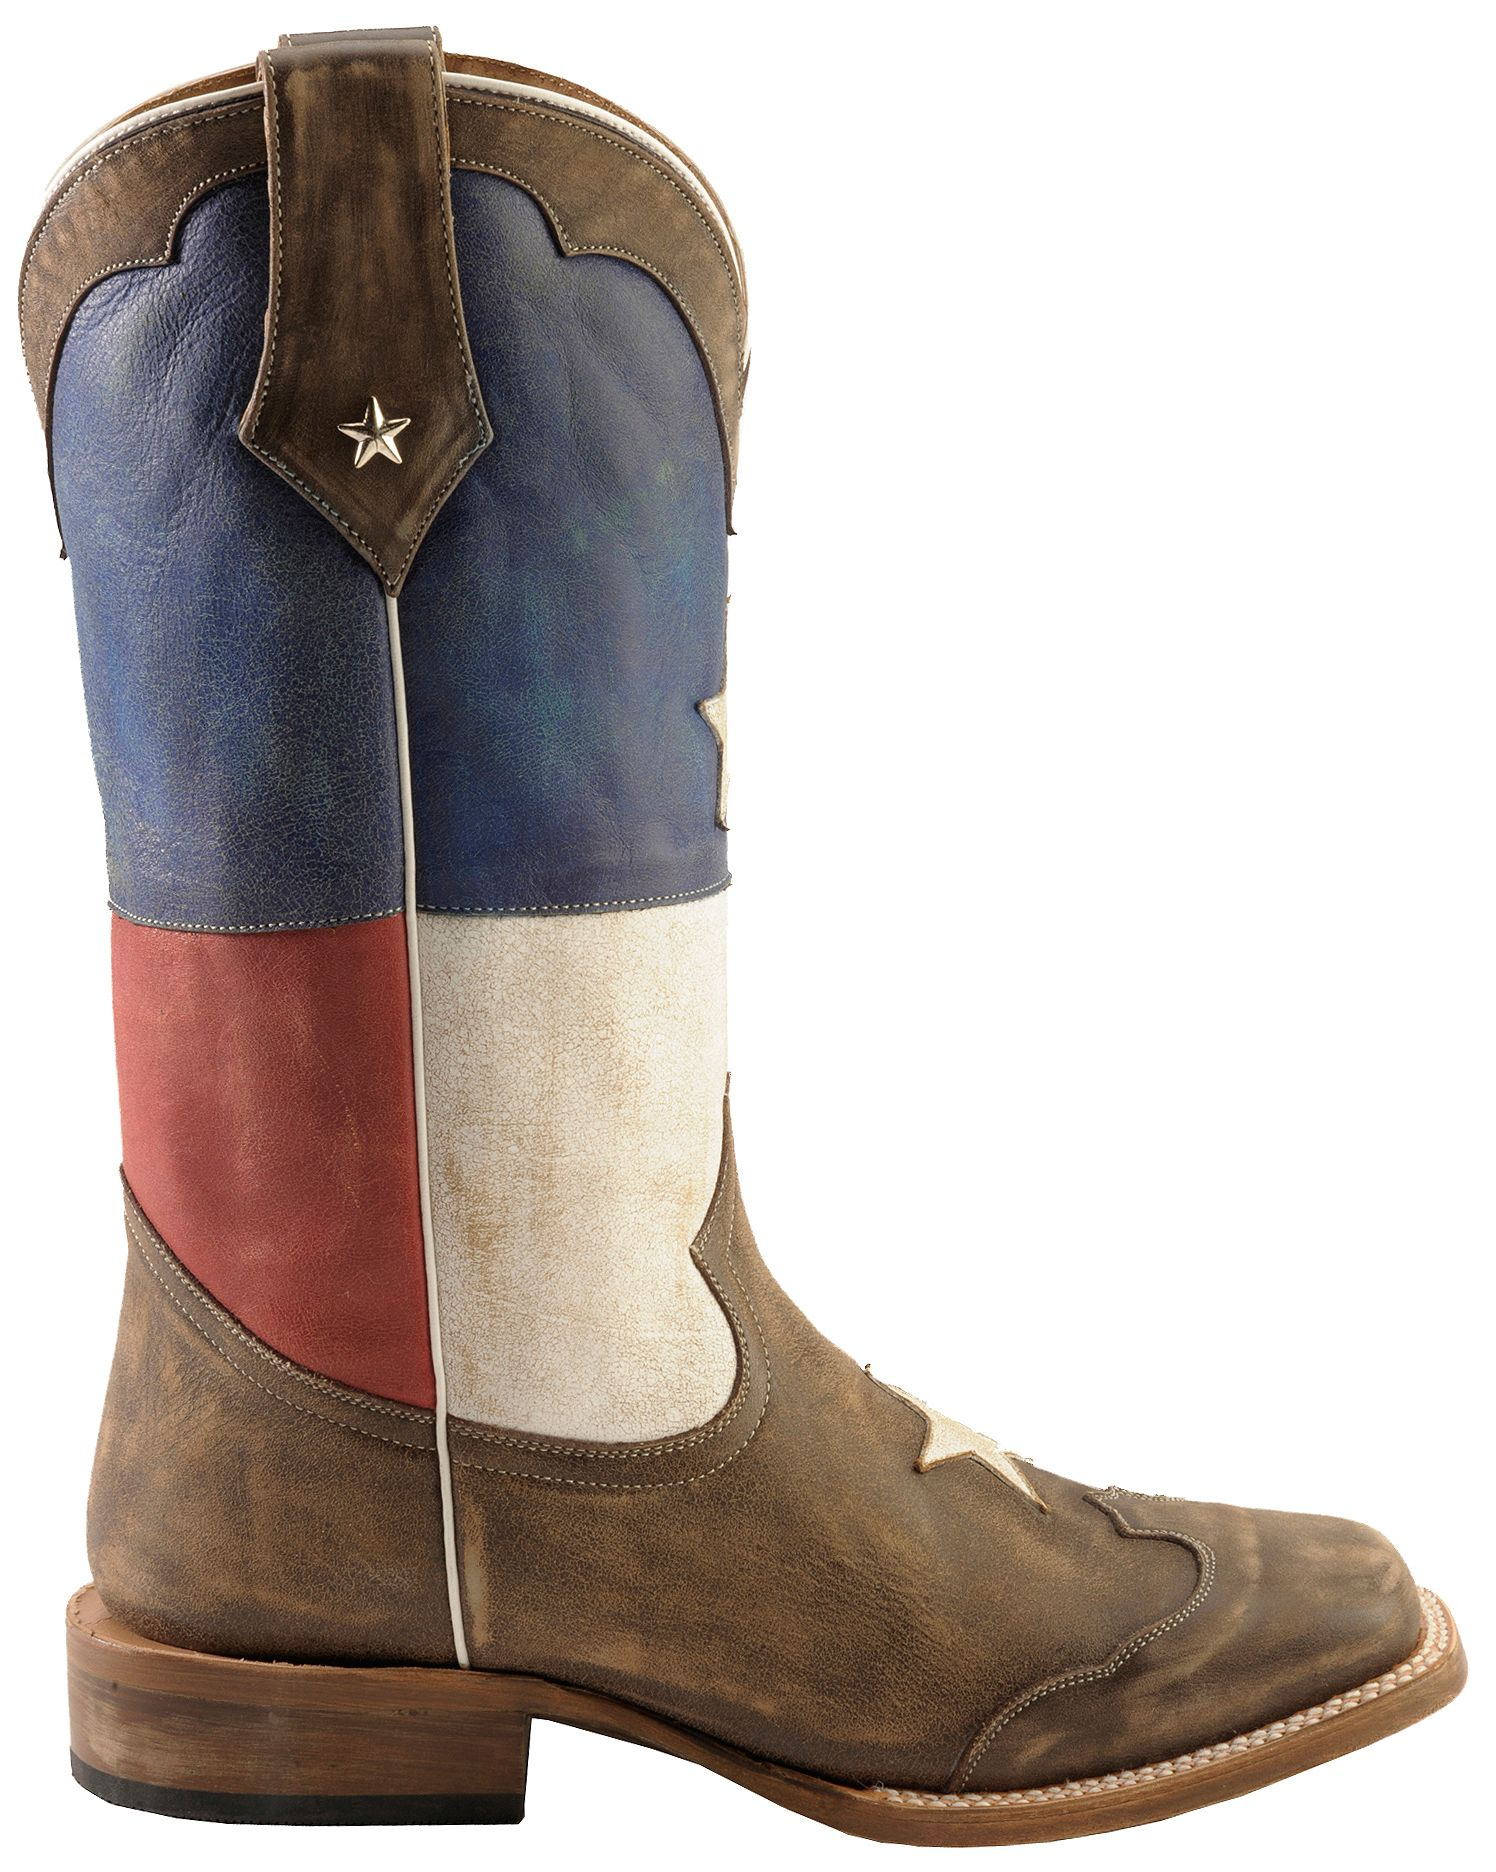 Roper Texas Flag Cowboy Boots Square Toe Country Outfitter